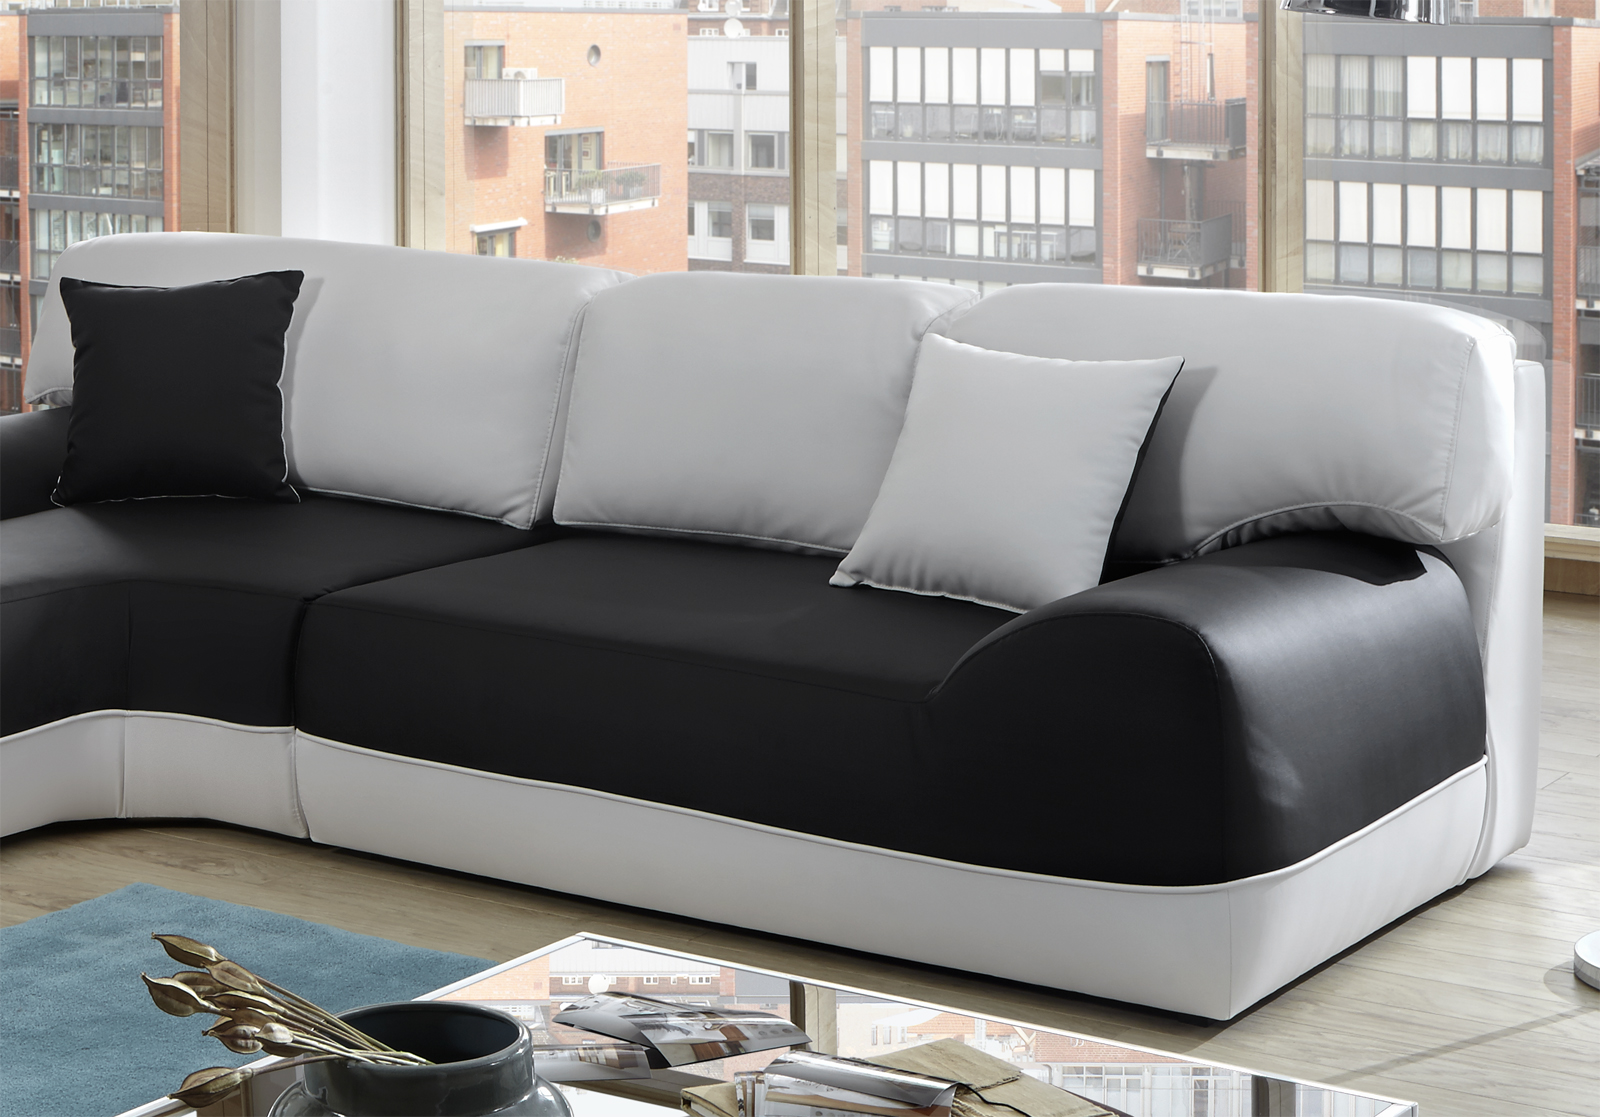 sam ecksofa sofa schwarz wei couch impulso 220 x 260 cm. Black Bedroom Furniture Sets. Home Design Ideas